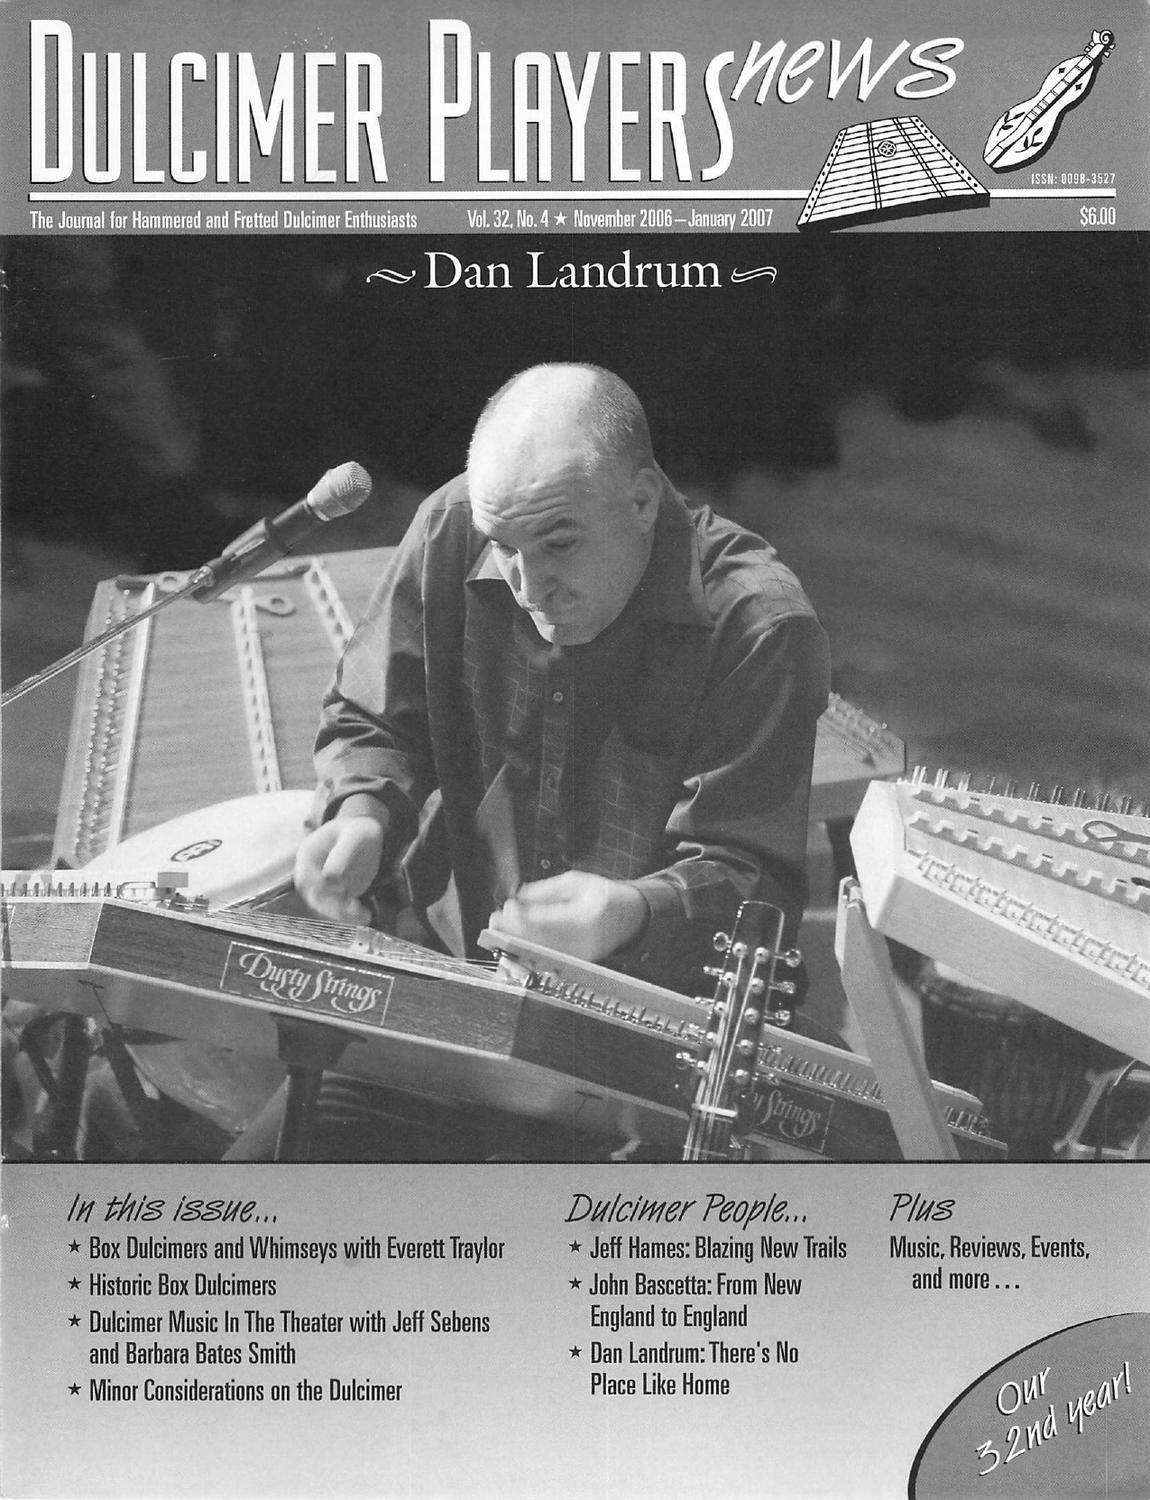 dulcimer players news vol no by dulcimer players 2006 04 dulcimer players news vol 32 no 4 by dulcimer players news inc issuu